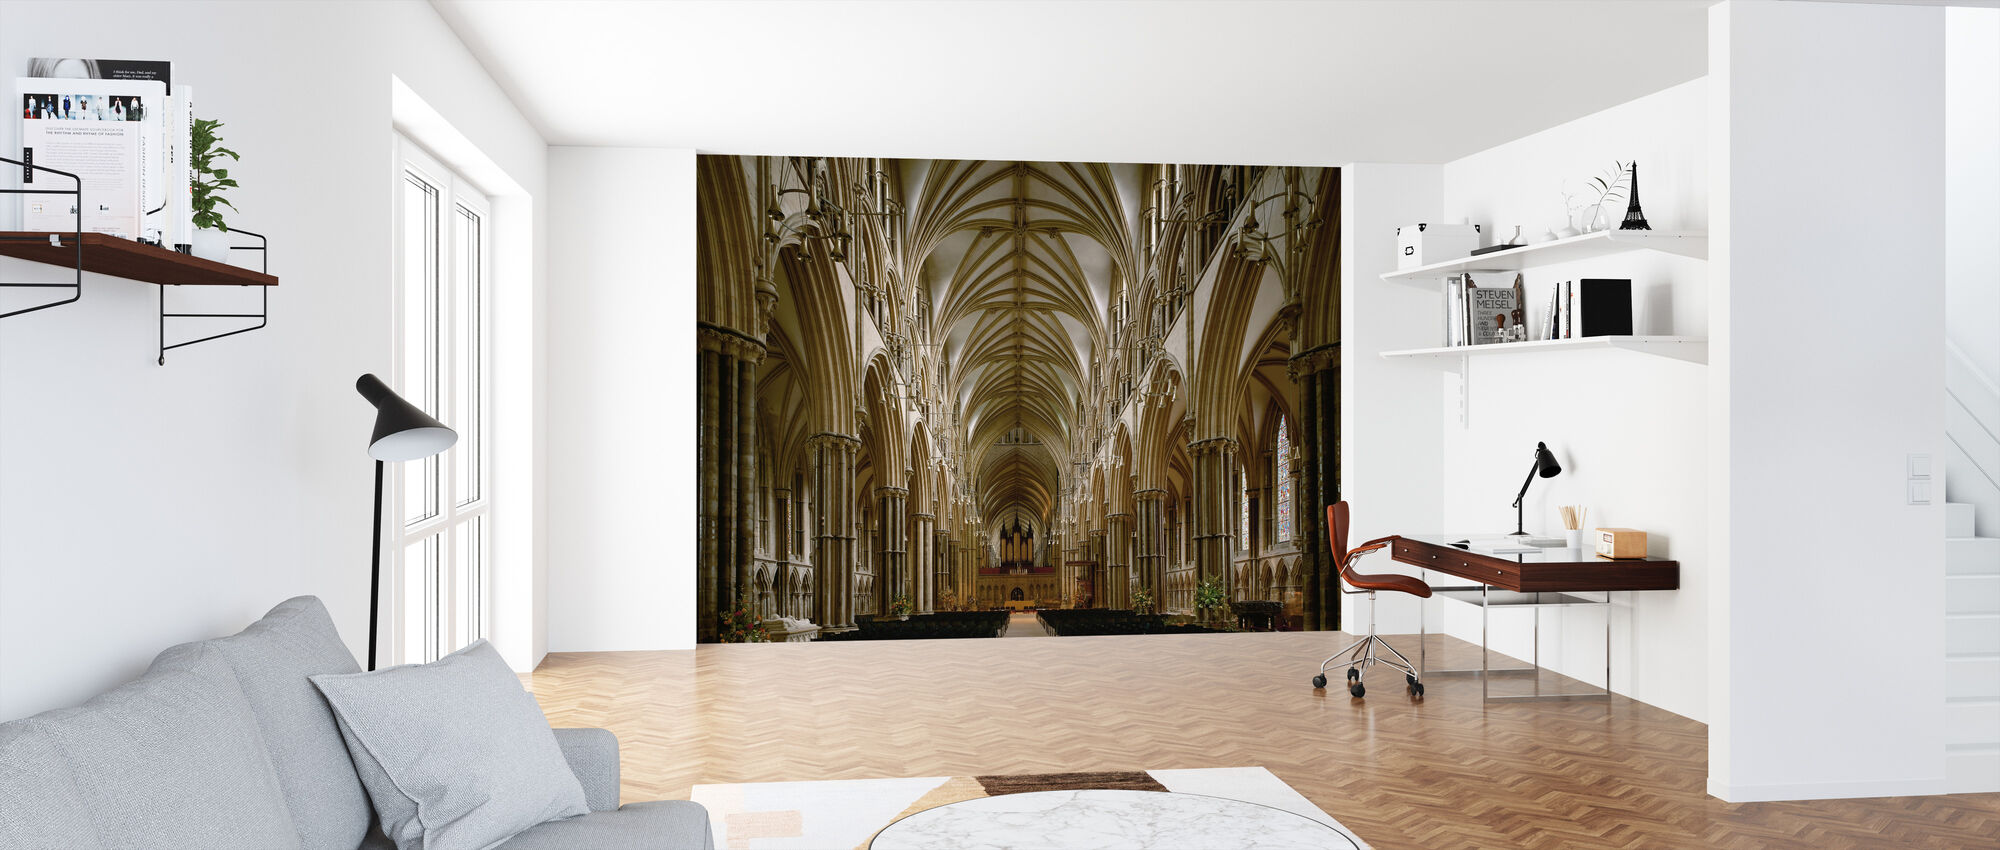 Center Nave of Lincoln Cathedral - Wallpaper - Office